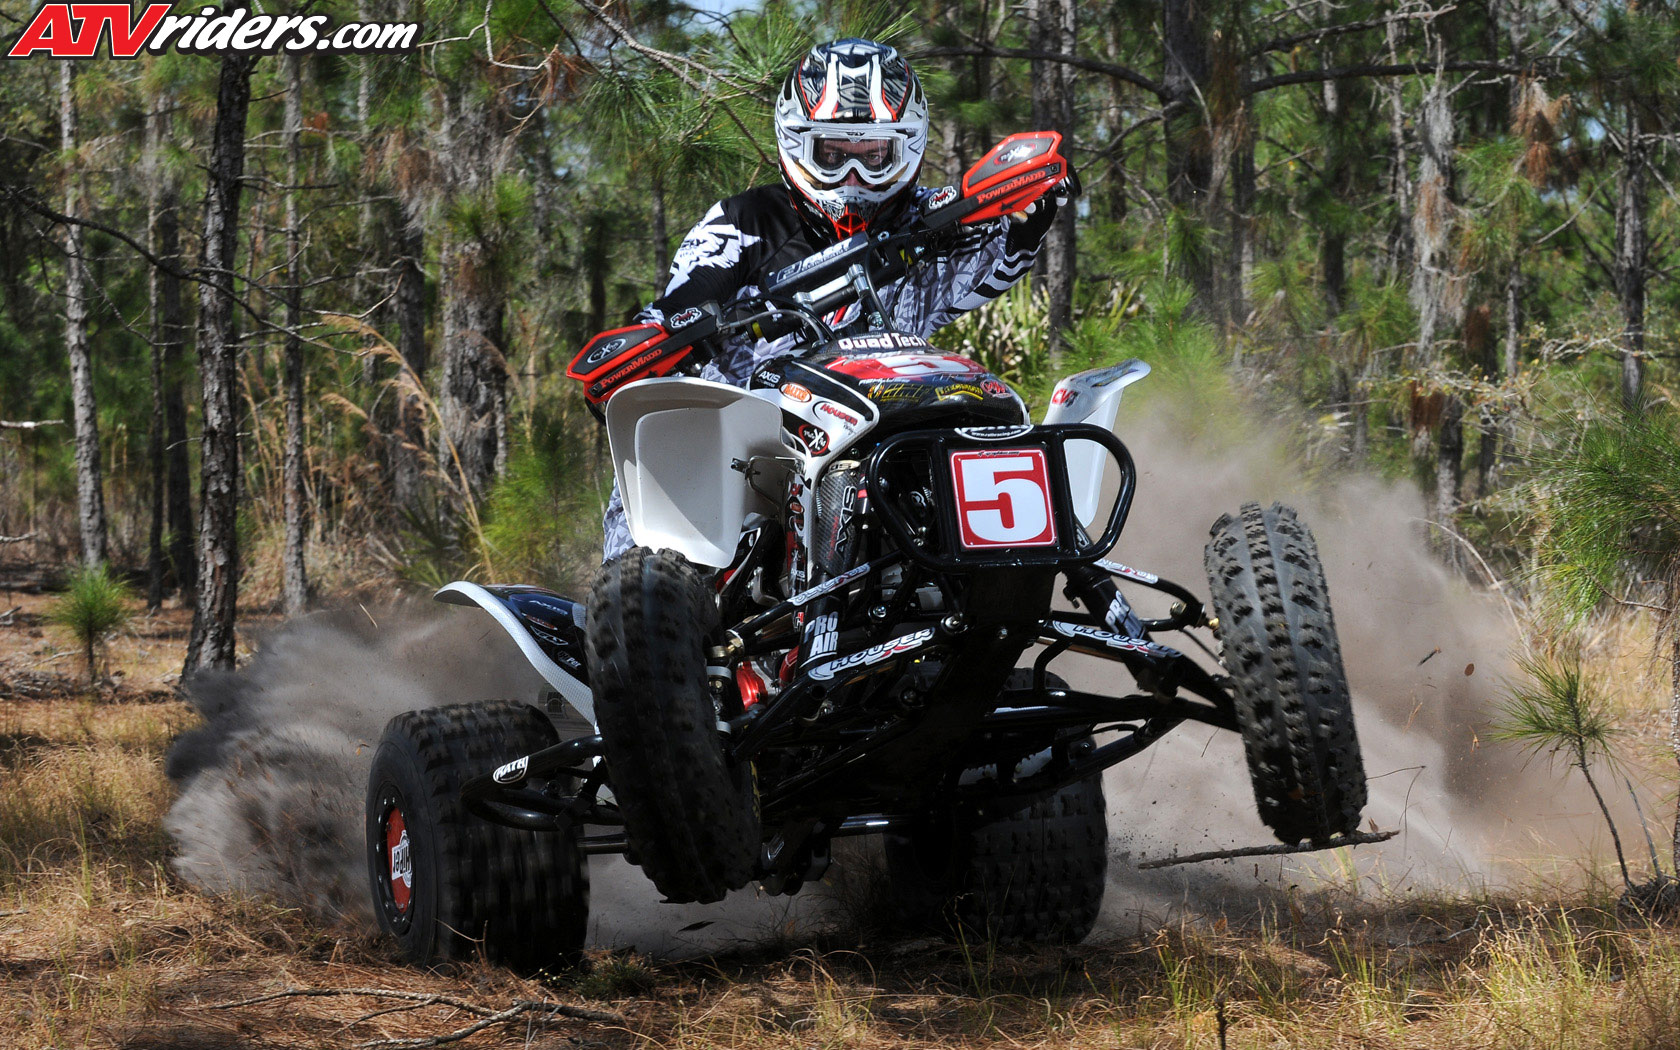 [Image: 2009-11-04-honda-bryan-cook-gncc-atv-riding-1680.jpg]